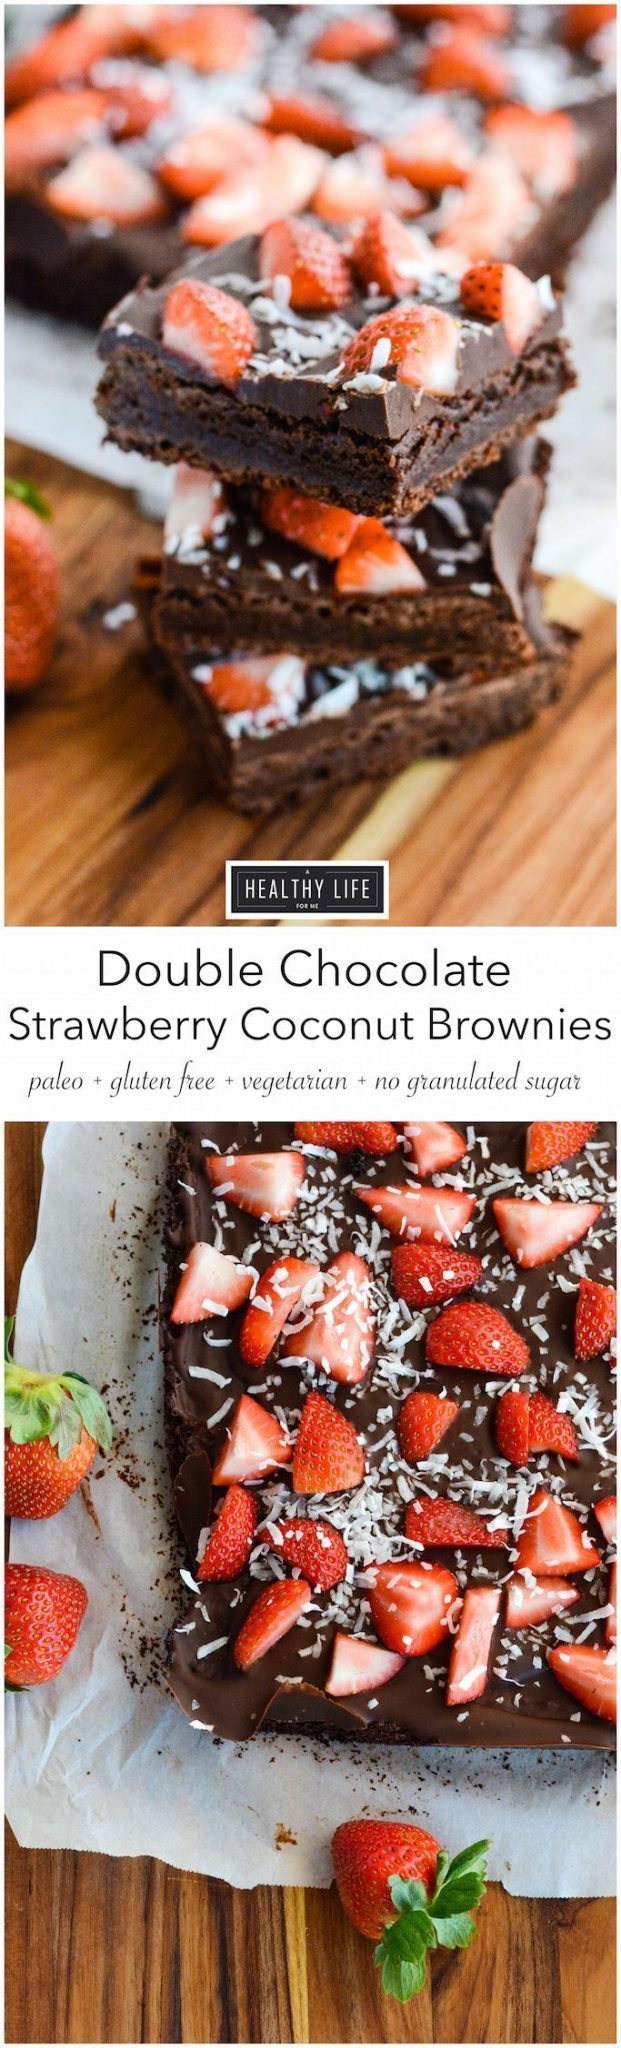 Paleo Double Chocolate Strawberry Coconut Brownie Recipe | ahealthylifeforme.com